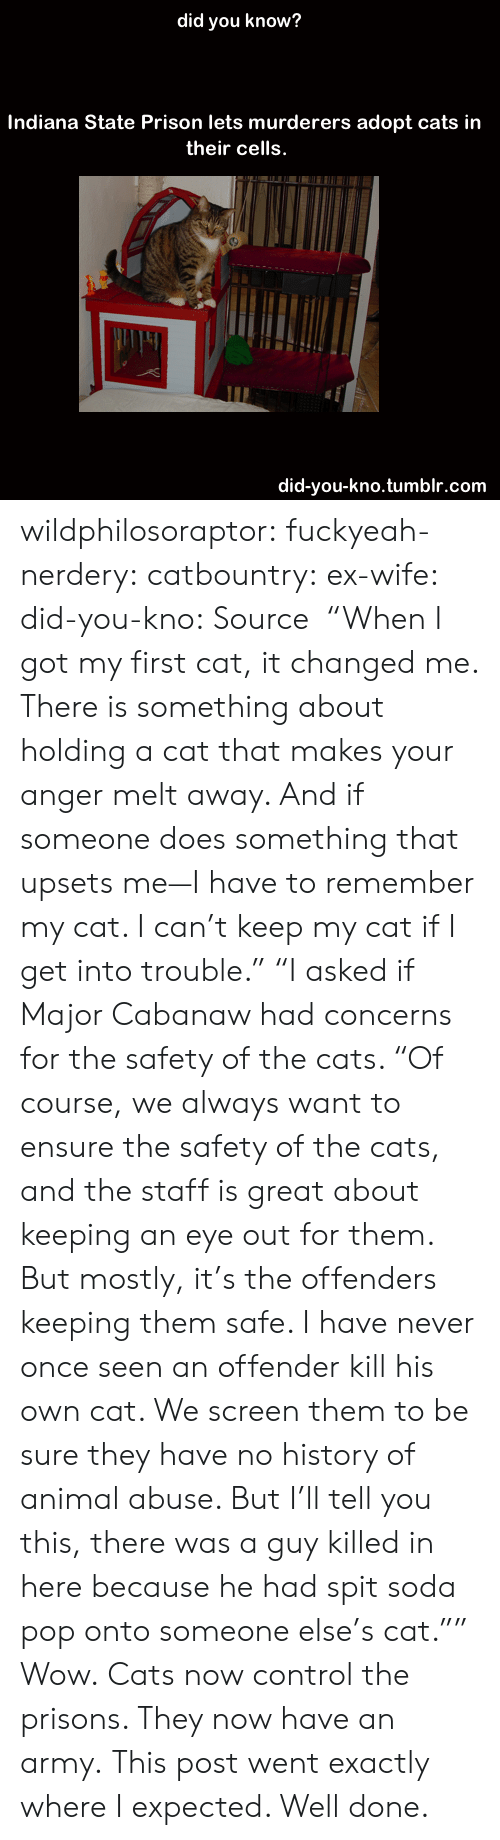 """An Army: did you know?  Indiana State Prison lets murderers adopt cats in  their cells.  did-you-kno.tumblr.com wildphilosoraptor:  fuckyeah-nerdery:  catbountry:  ex-wife:  did-you-kno:  Source  """"When I got my first cat, it changed me. There is something about holding a cat that makes your anger melt away. And if someone does something that upsets me—I have to remember my cat. I can't keep my cat if I get into trouble.""""  """"I asked if Major Cabanaw had concerns for the safety of the cats. """"Of course, we always want to ensure the safety of the cats, and the staff is great about keeping an eye out for them. But mostly, it's the offenders keeping them safe. I have never once seen an offender kill his own cat. We screen them to be sure they have no history of animal abuse. But I'll tell you this, there was a guy killed in here because he had spit soda pop onto someone else's cat."""""""" Wow.  Cats now control the prisons. They now have an army.  This post went exactly where I expected. Well done."""